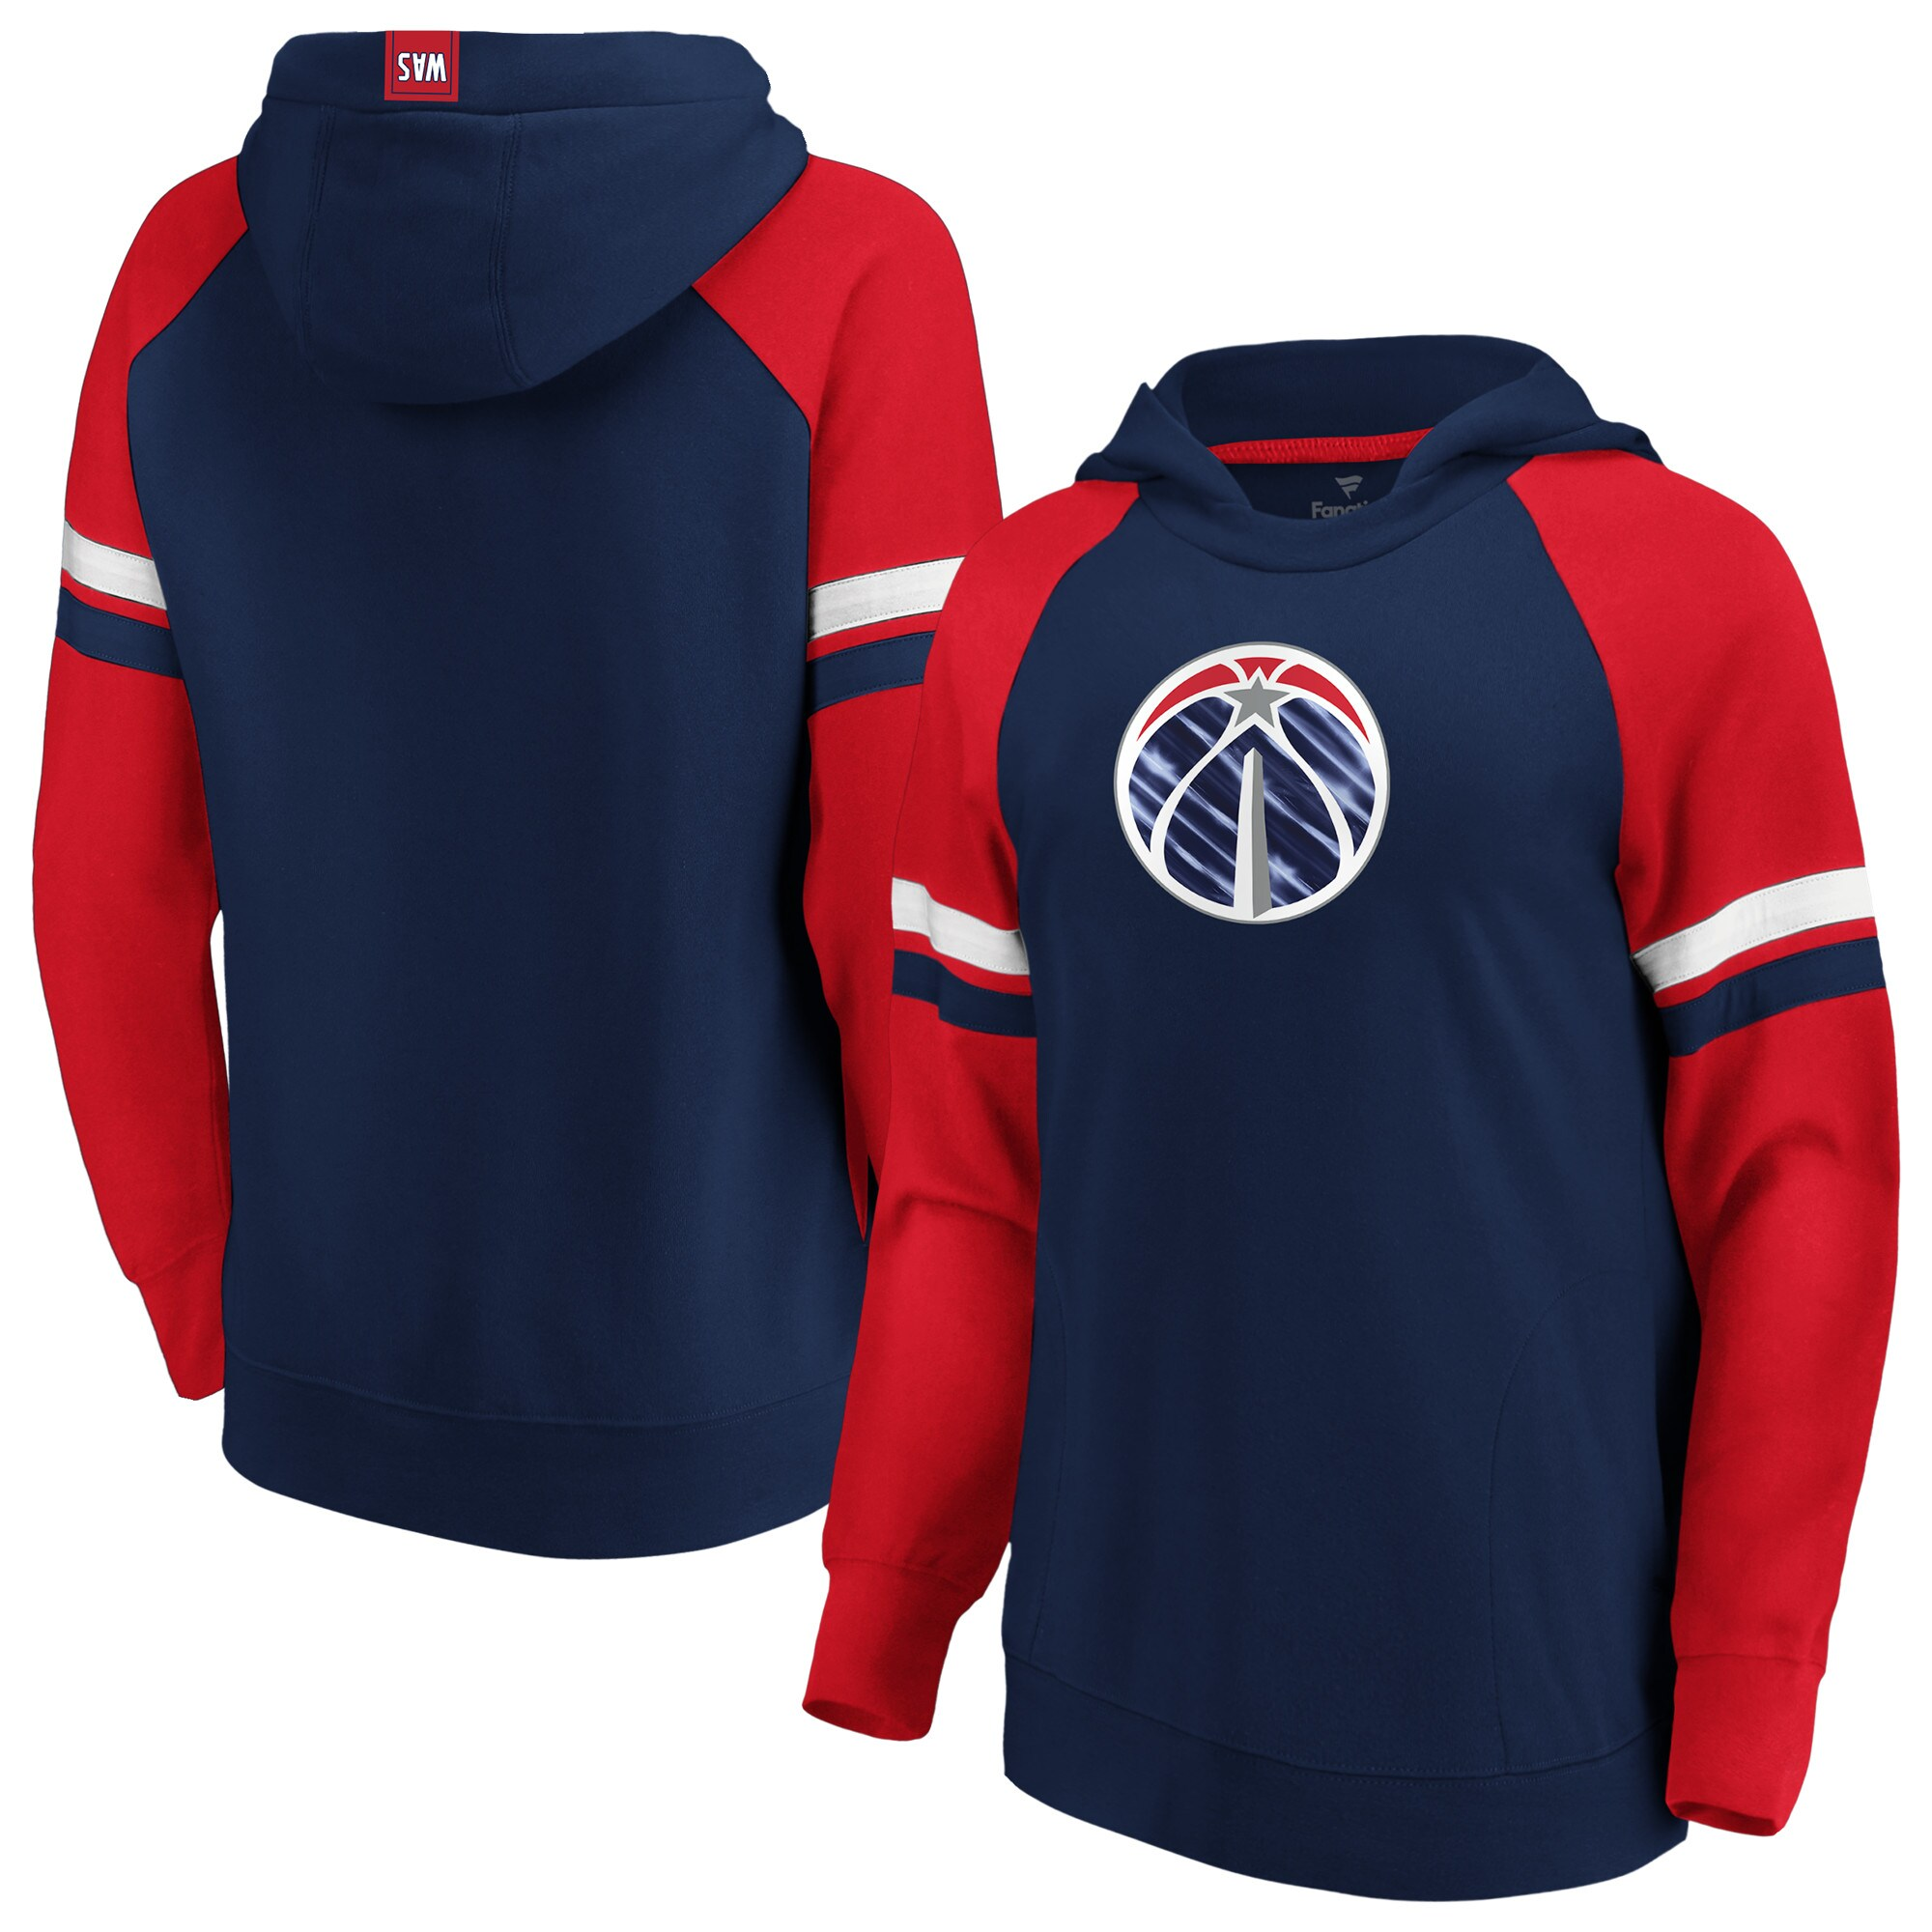 Washington Wizards Fanatics Branded Women's Iconic Best in Stock Pullover Hoodie - Navy/Red